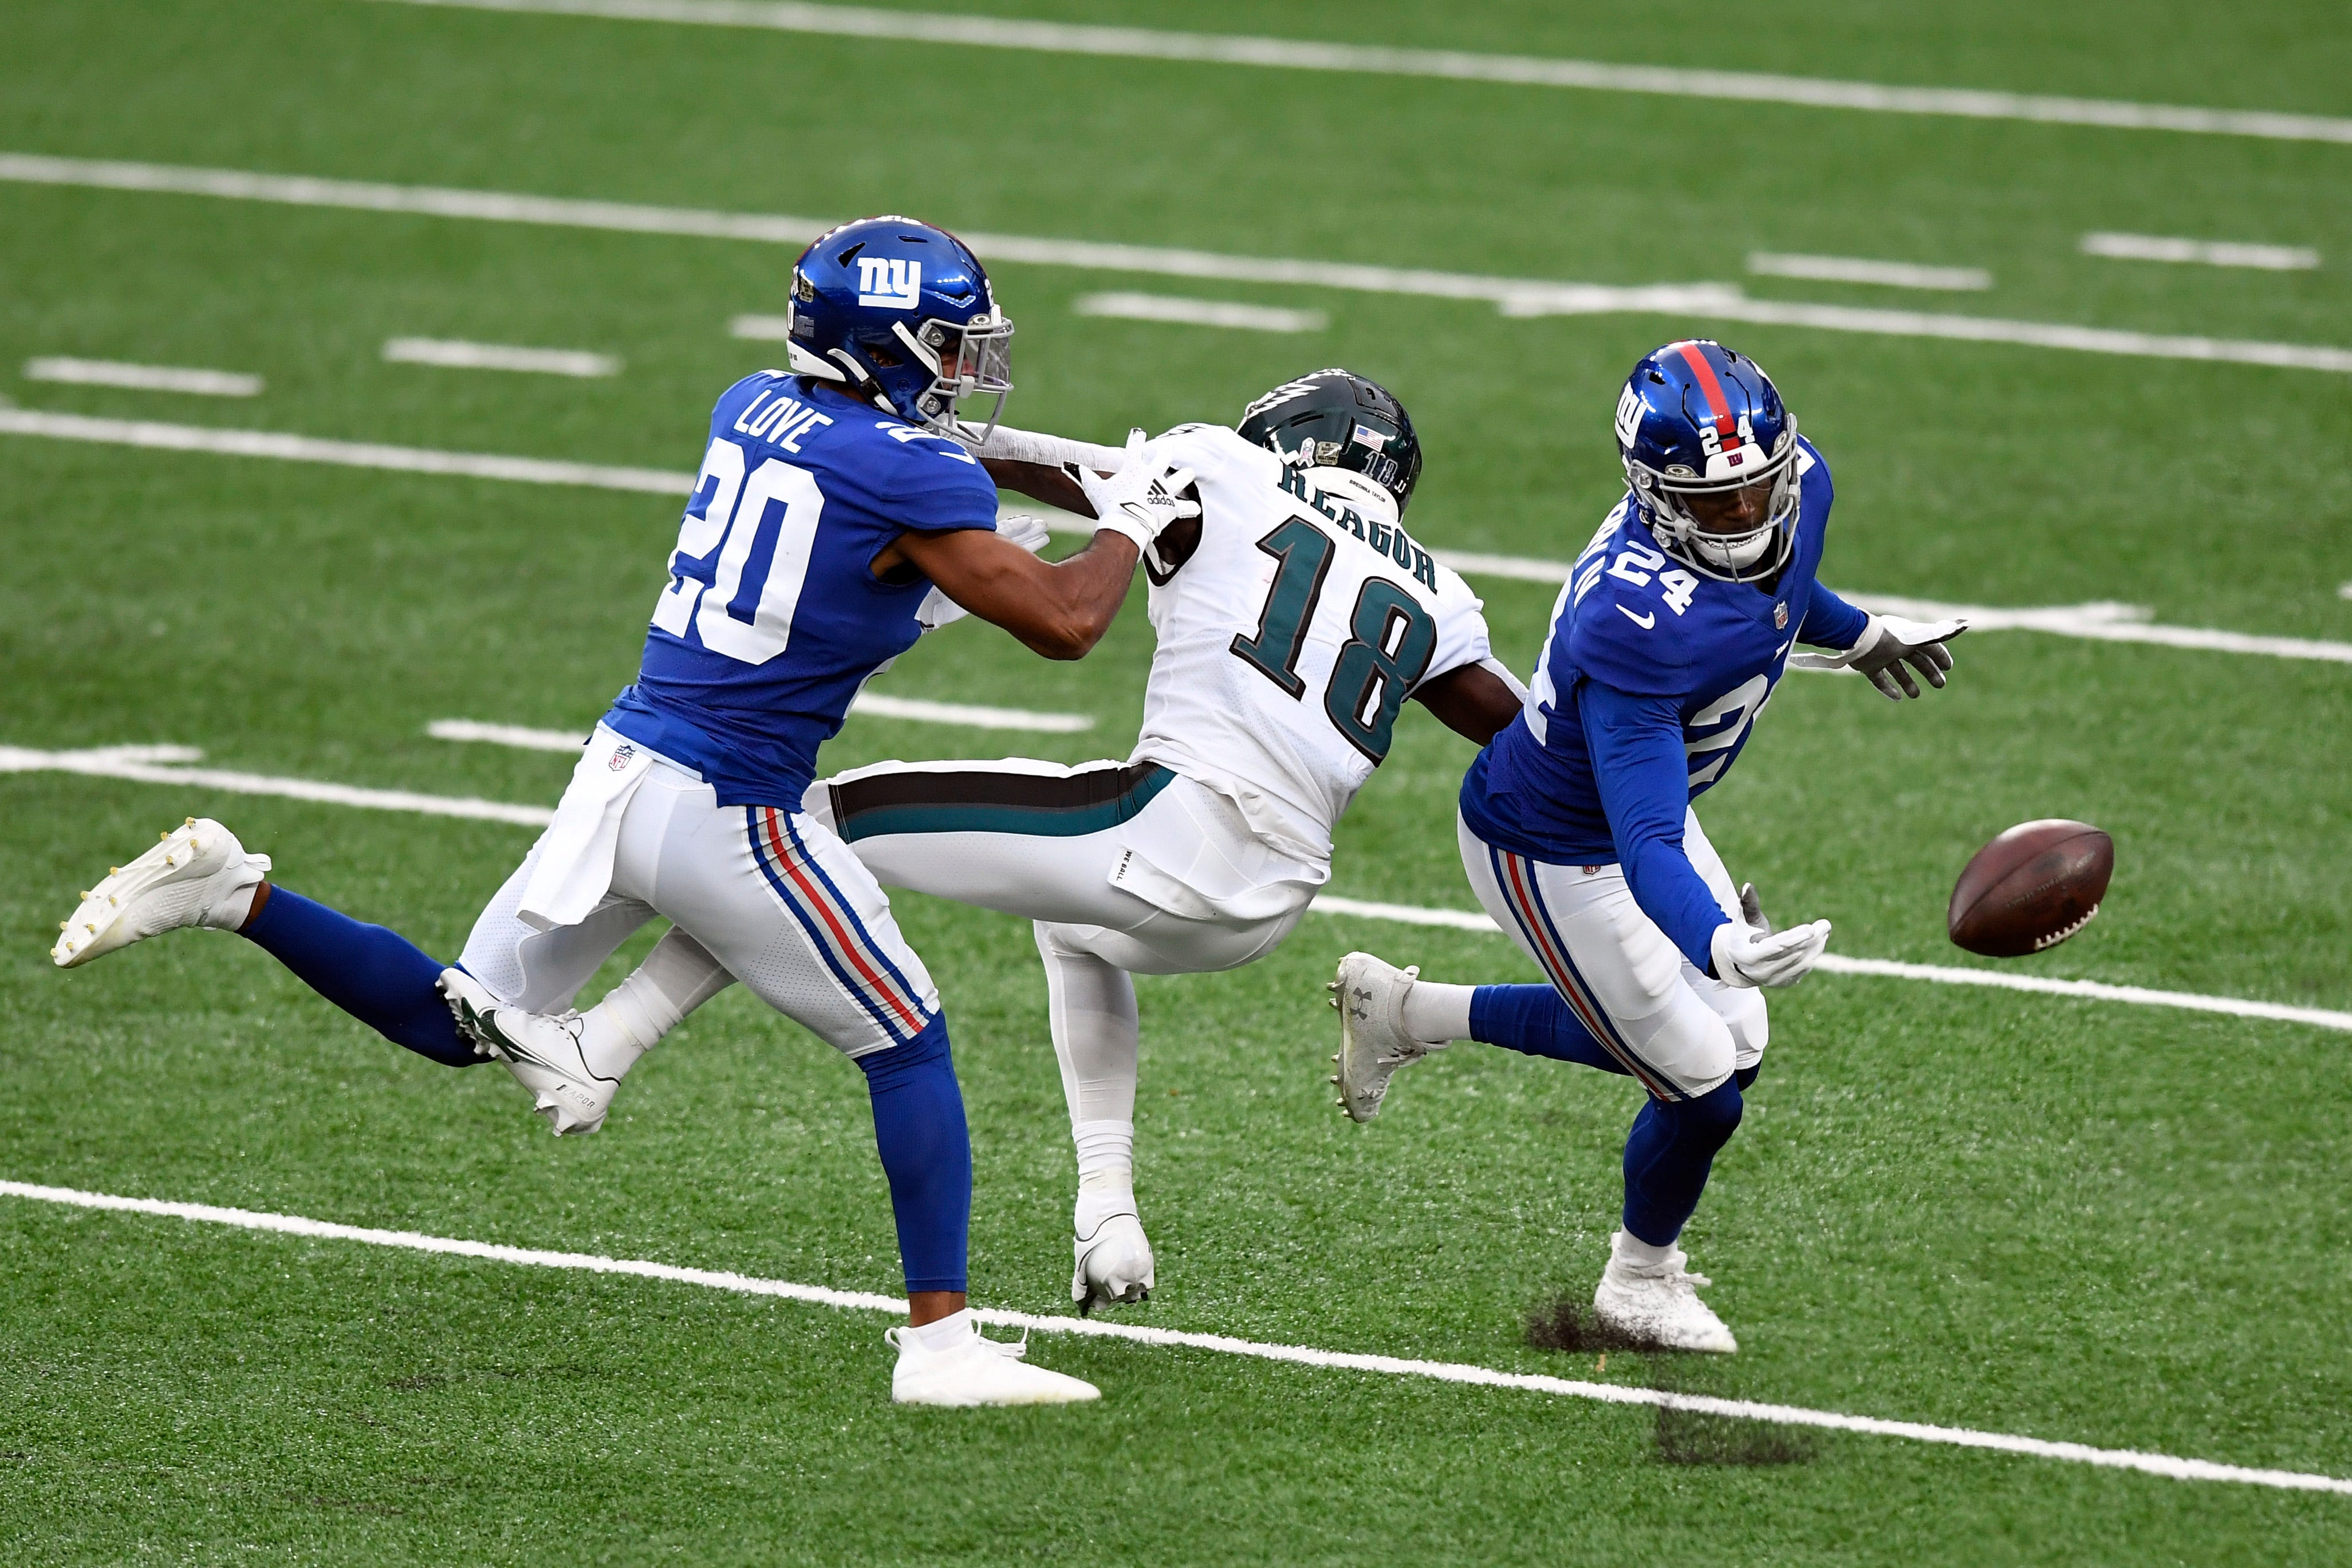 Eagles coach Doug Pederson 'pissed off' after losing to Giants